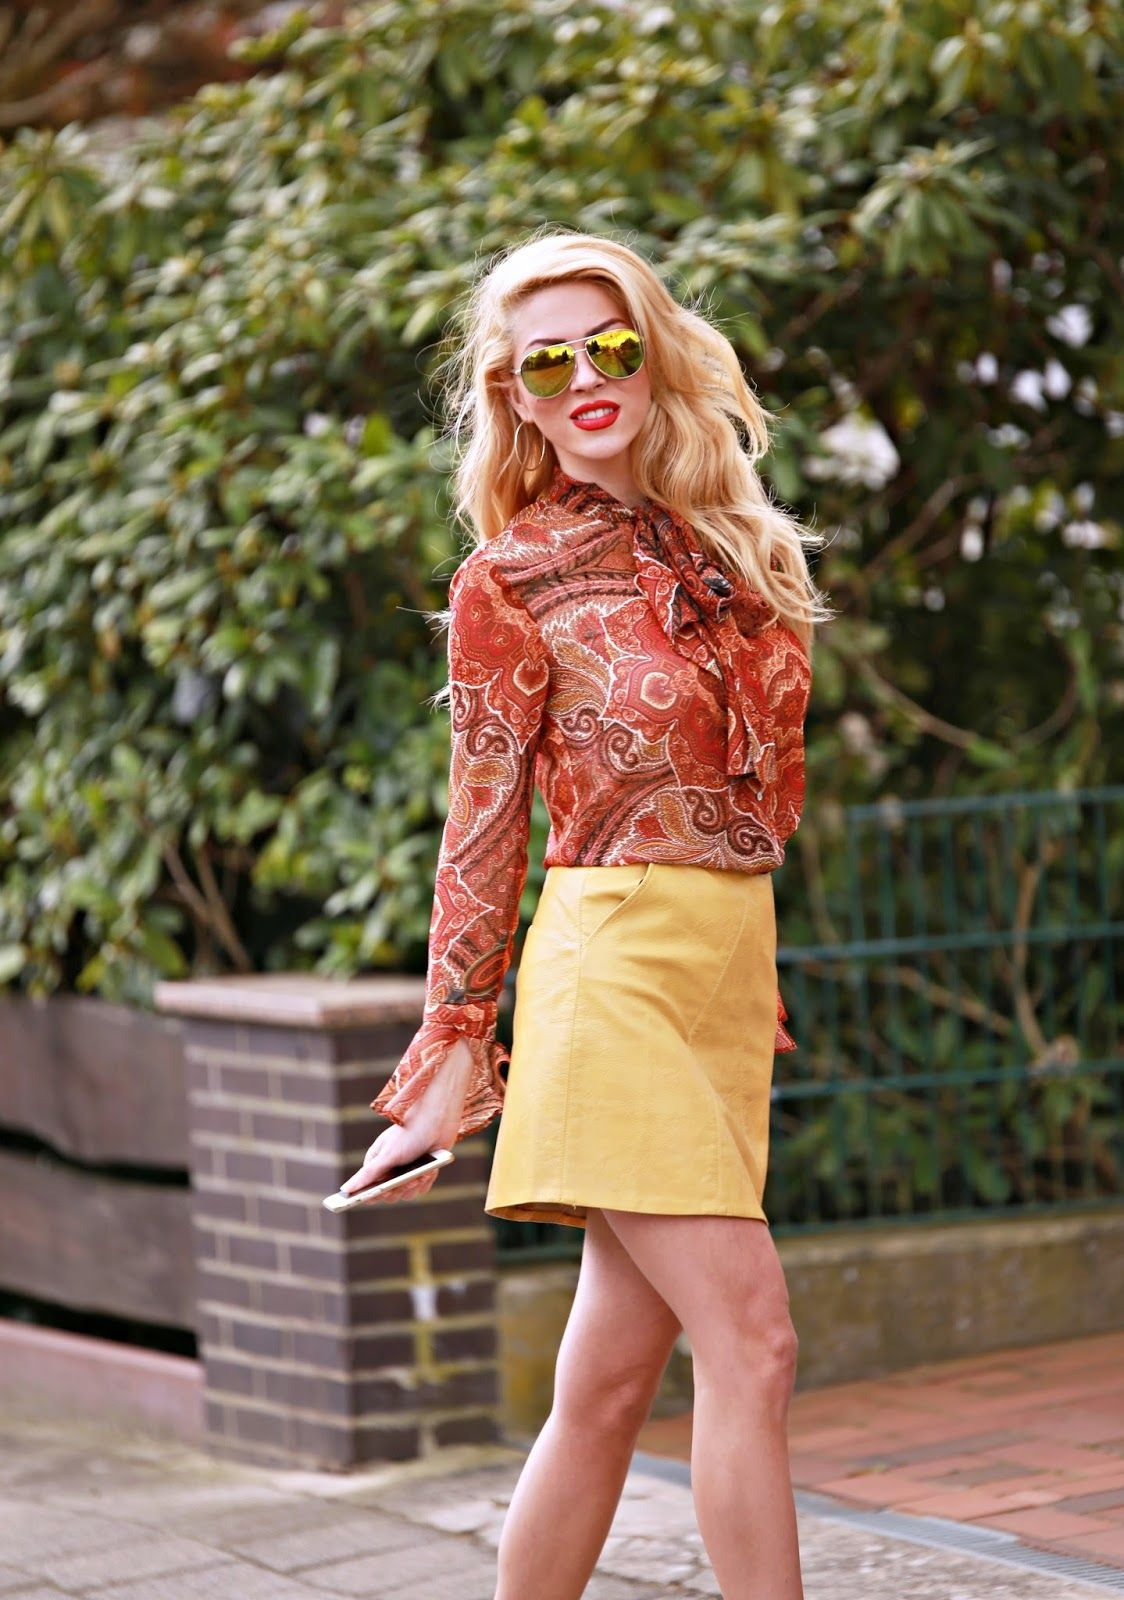 mustard skirt, orange blouse @roressclothes closet ideas #women fashion outfit #clothing style apparel